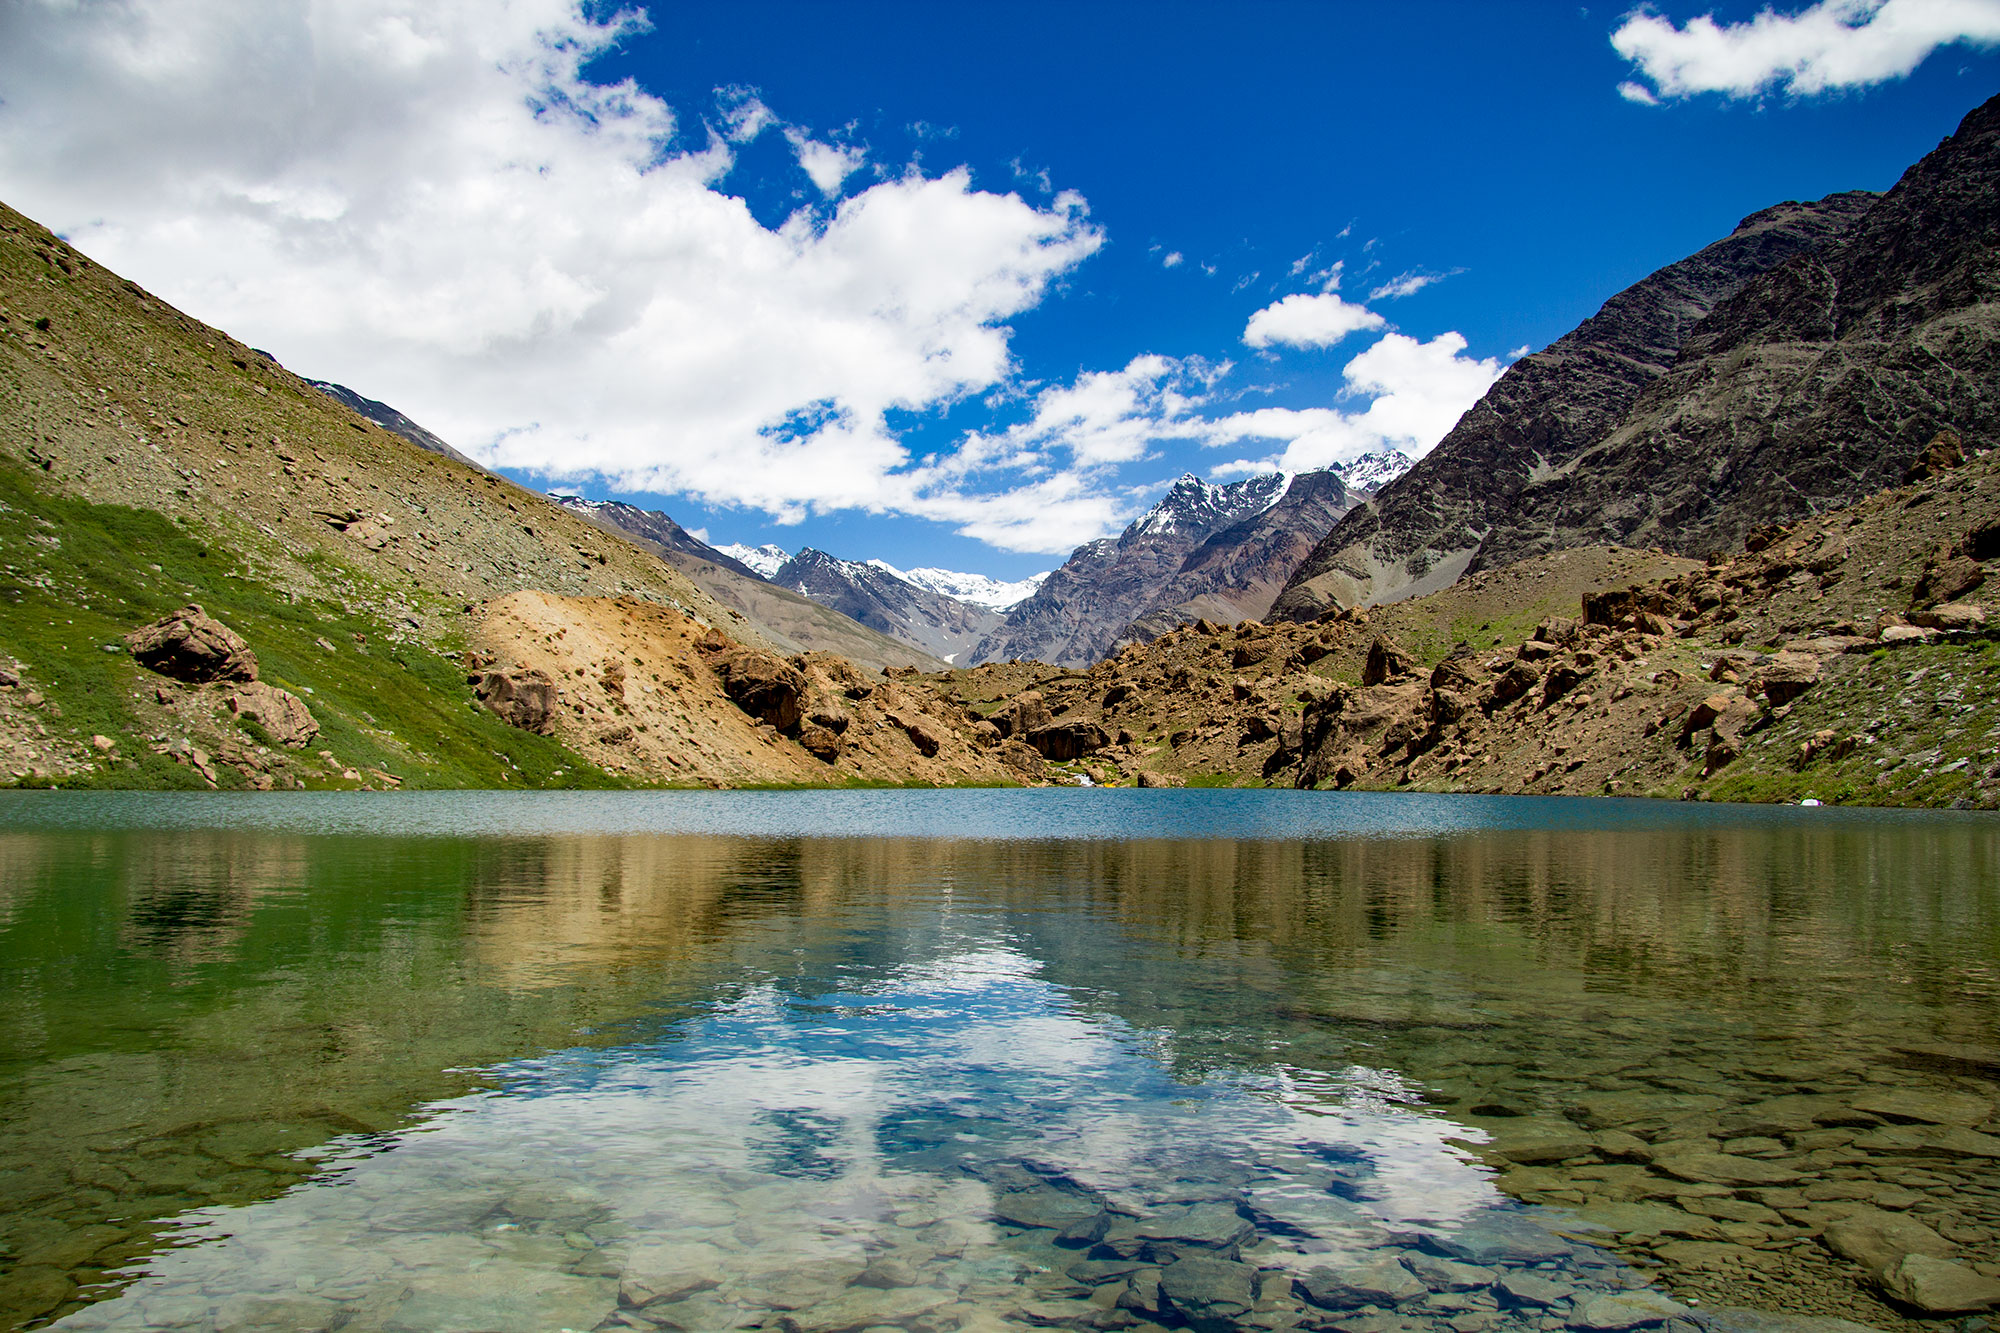 Lake along the Manali Leh Highway